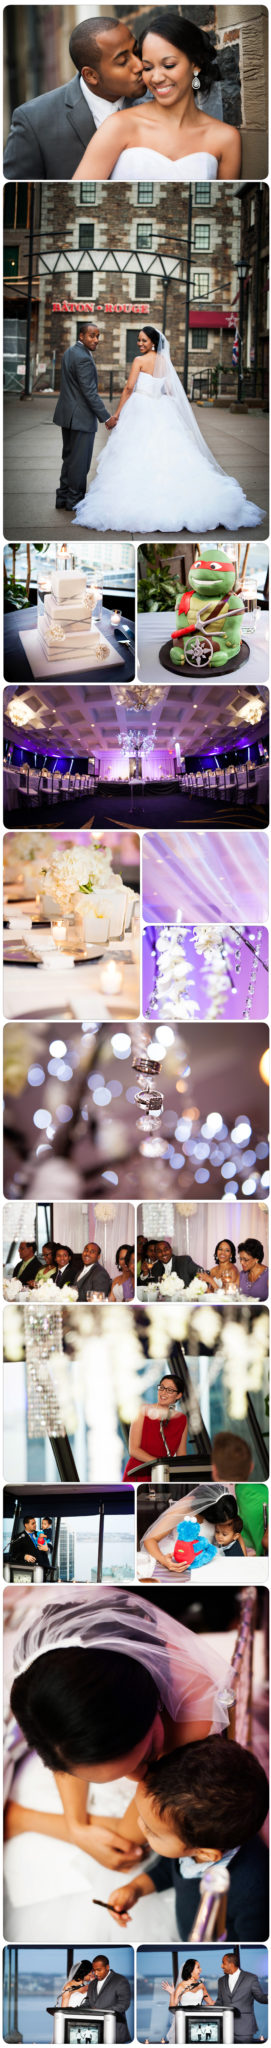 winter_wedding_reception